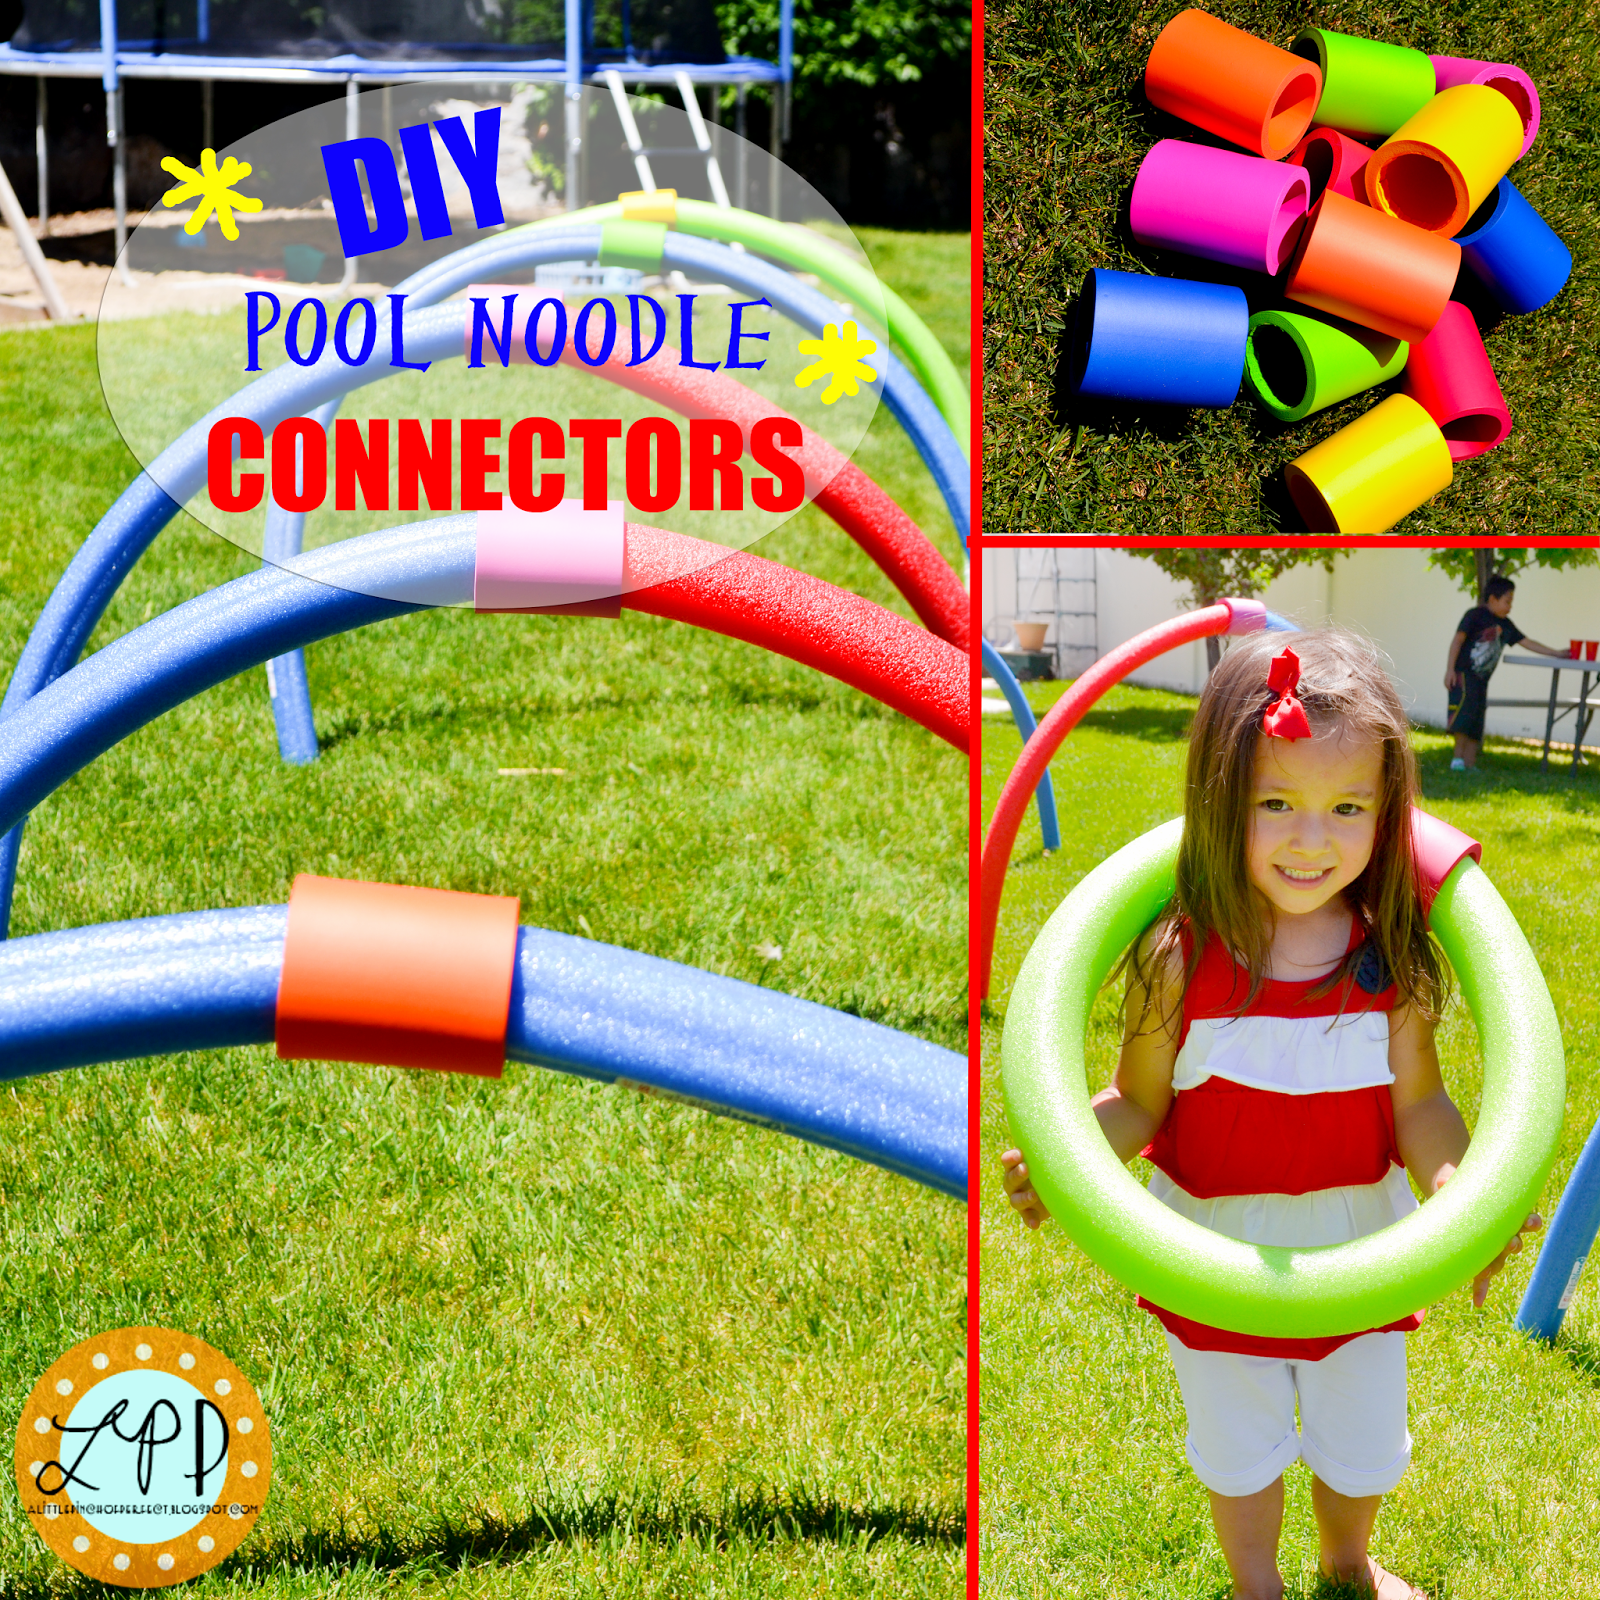 Koozie Connectors at Dollar Tree or Hobby Lobby DIY Pool Noodle